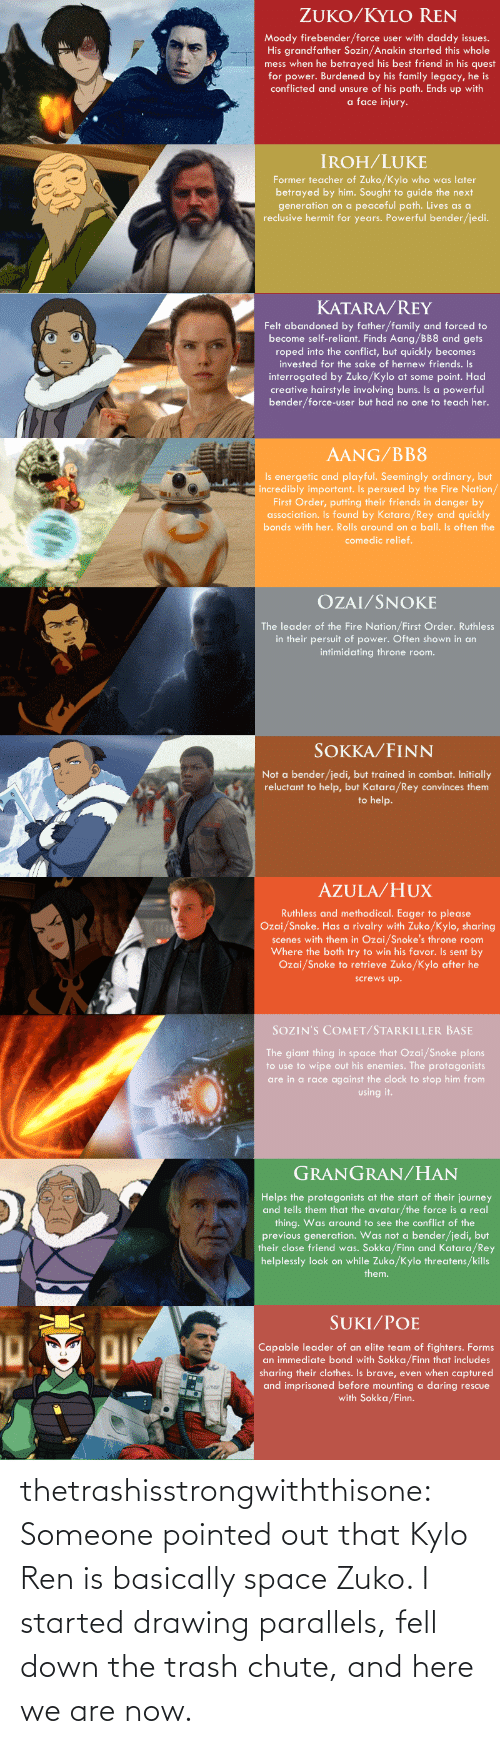 Kan: ZUKO/KYLO REN  Moody firebender/force user with daddy issues.  His grandfather Sozin/Anakin started this whole  mess when he betrayed his best friend in his quest  for power. Burdened by his family legacy, he is  conflicted and unsure of his path. Ends up with  a face injury.  IROH/LUKE  Former teacher of Zuko/Kylo who was later  betrayed by him. Sought to guide the next  generation on a peaceful path. Lives as a  reclusive hermit for years. Powerful bender/jedi.   KATARA/REY  Felt abandoned by father/family and forced to  become self-reliant. Finds Aang/BB8 and gets  roped into the conflict, but quickly becomes  invested for the sake of hernew friends. Is  interrogated by Zuko/Kylo at some point. Had  creative hairstyle involving buns. Is a powerful  bender/force-user but had no one to teach her.  AANG/BB8  Is energetic and playful. Seemingly ordinary, but  incredibly important. Is persued by the Fire Nation/  First Order, putting their friends in danger by  association. Is found by Katara/Rey and quickly  bonds with her. Rolls around on a ball. Is often the  comedic relief.   OZAI/SNOKE  The leader of the Fire Nation/First Order. Ruthless  in their persuit of power. Often shown in an  intimidating throne room.  SOKKA/FINN  Not a bender/jedi, but trained in combat. Initially  reluctant to help, but Katara/Rey convinces them  to help.   AZULA/HUX  Ruthless and methodical. Eager to please  Ozai/Snoke. Has a rivalry with Zuko/Kylo, sharing  scenes with them in Ozai/Snoke's throne room  Where the both try to win his favor. Is sent by  Ozai/Snoke to retrieve Zuko/Kylo after he  KAN  LEGO  screws up.  SOZIN'S COMET/STARKILLER BASE  The giant thing in space that Ozai/Snoke plans  to use to wipe out his enemies. The protagonists  are in a race against the clock to stop him from  using it.   GRANGRAN/HAN  Helps the protagonists at the start of their journey  and tells them that the avatar/the force is a real  thing. Was around to see the conflict of the  previous gener